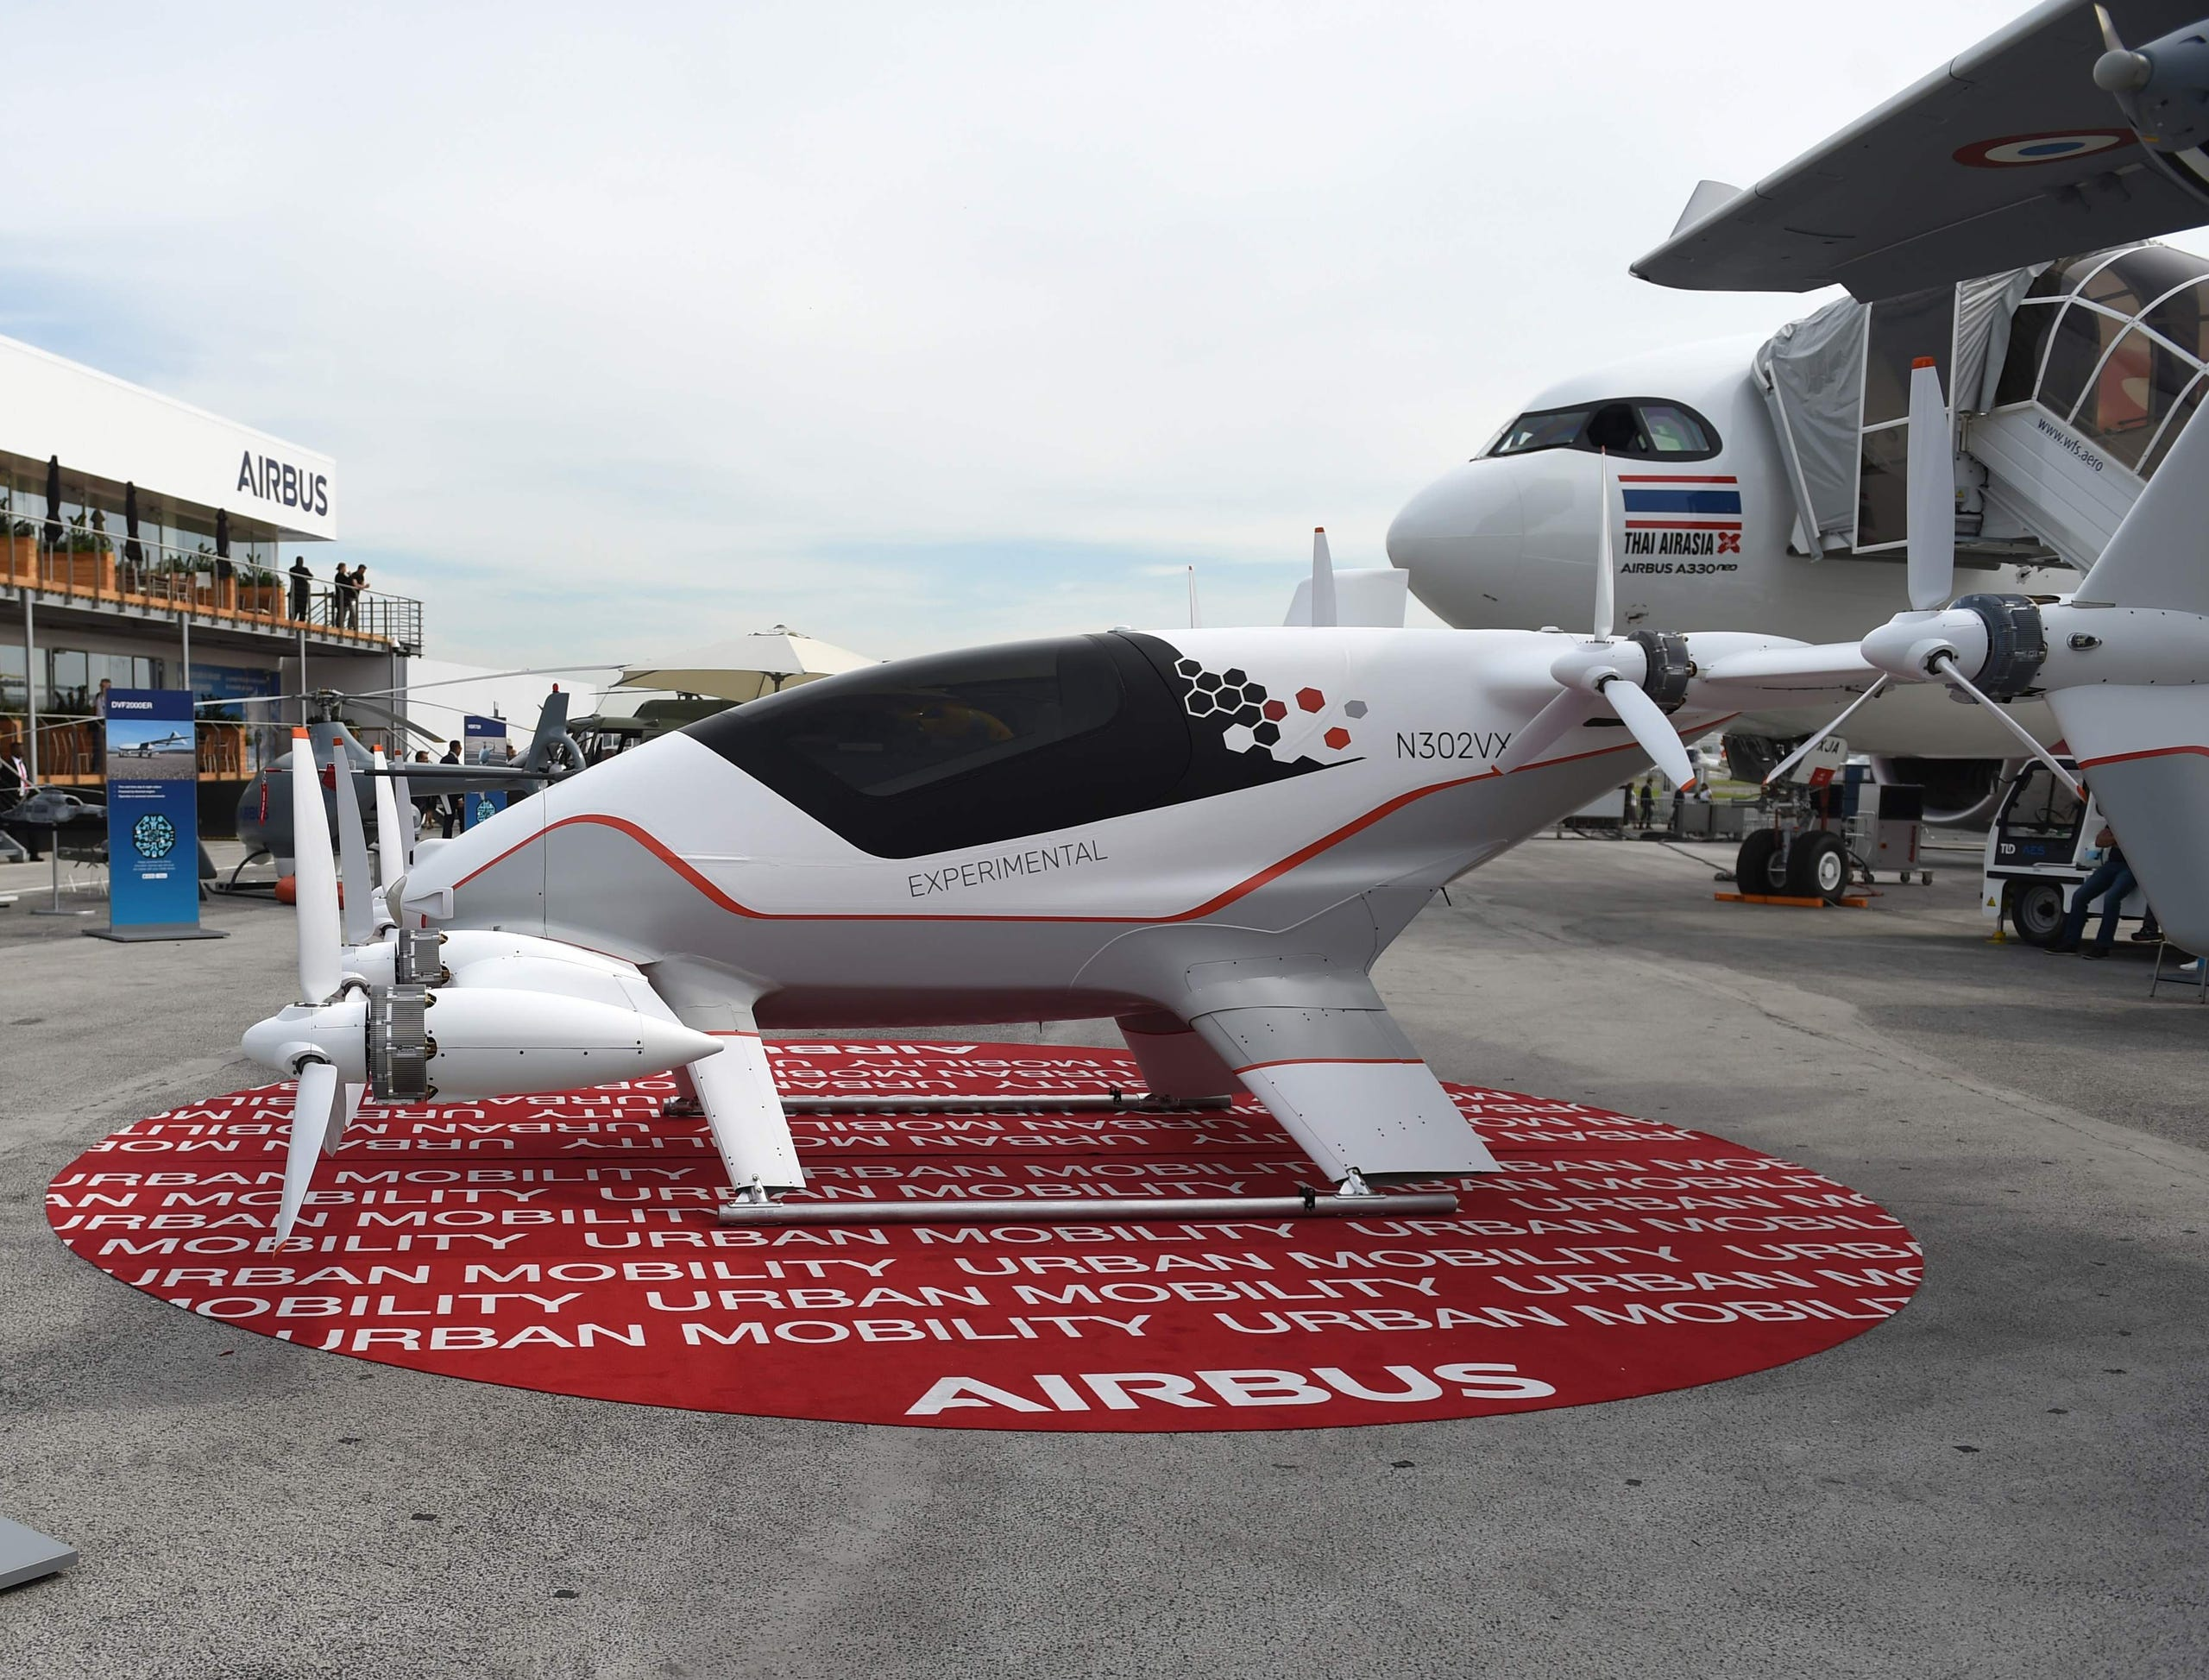 This is the Airbus all-electric, single-seat, tilt-wing vehicle demonstrator Vahana, June 18, 2019 at Le Bourget Airport, near Paris.